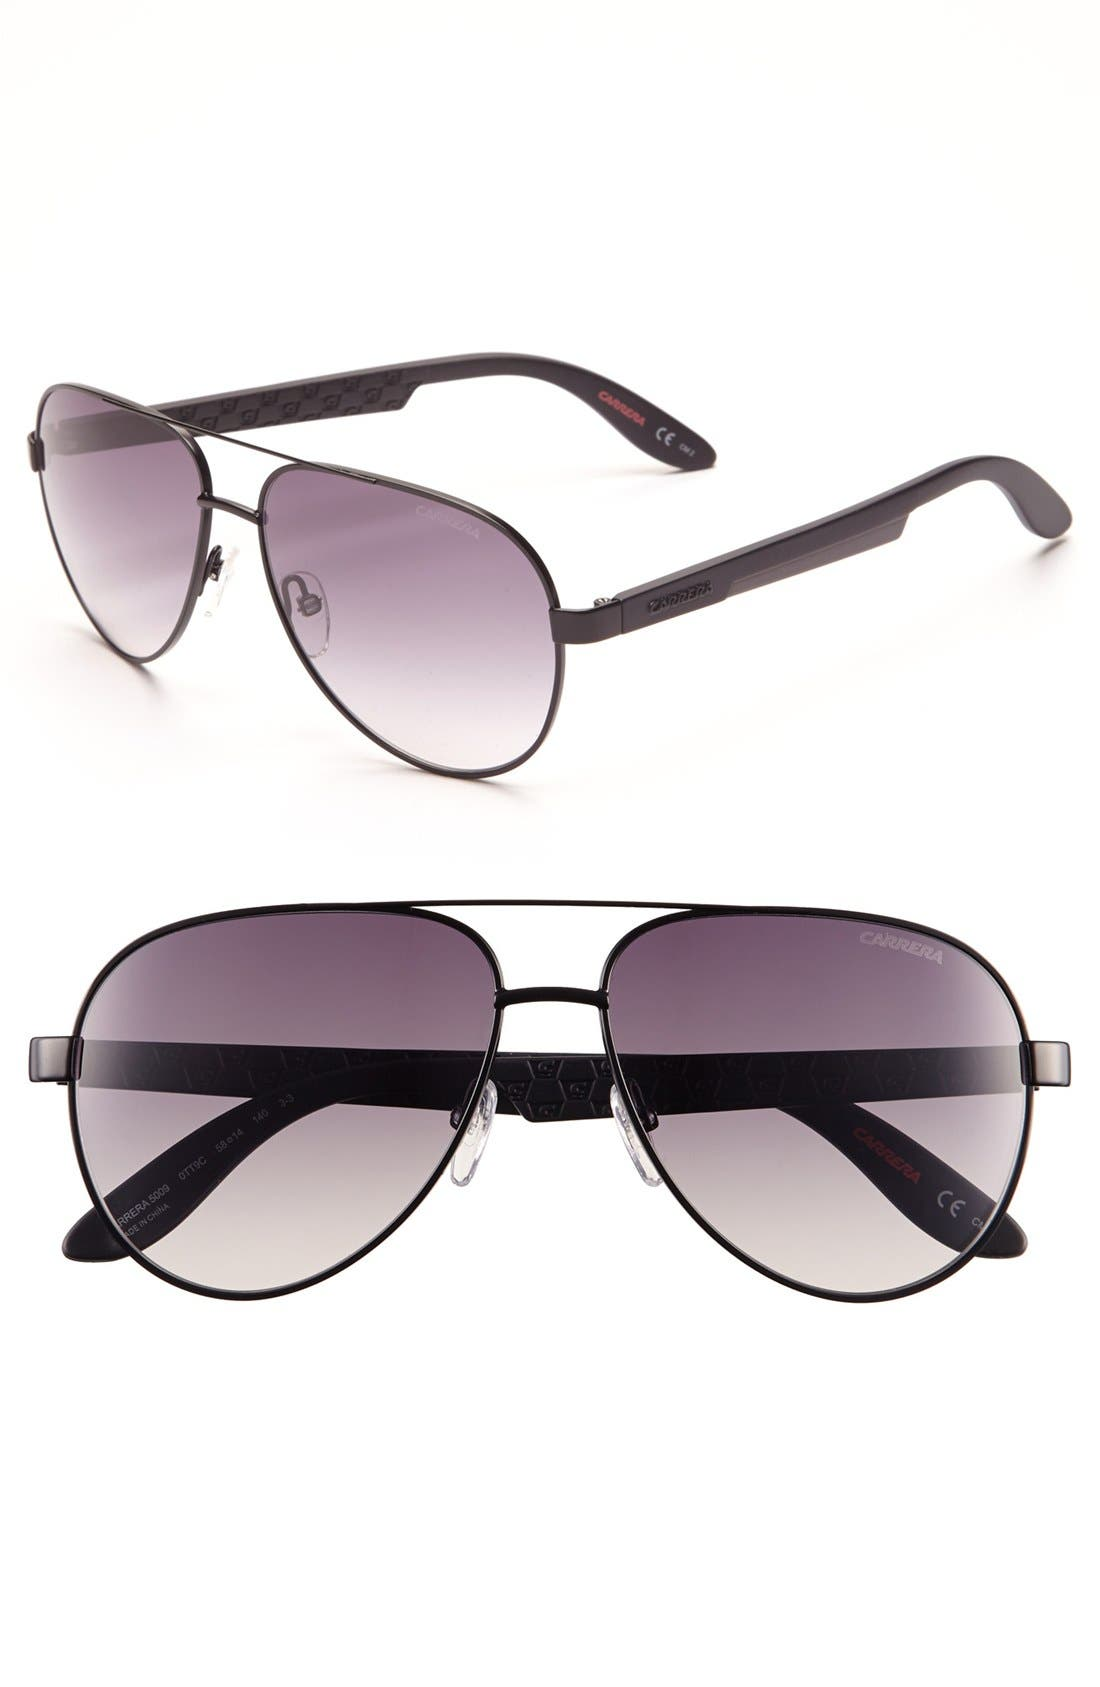 Alternate Image 1 Selected - Carrera Eyewear 58mm Aviator Sunglasses